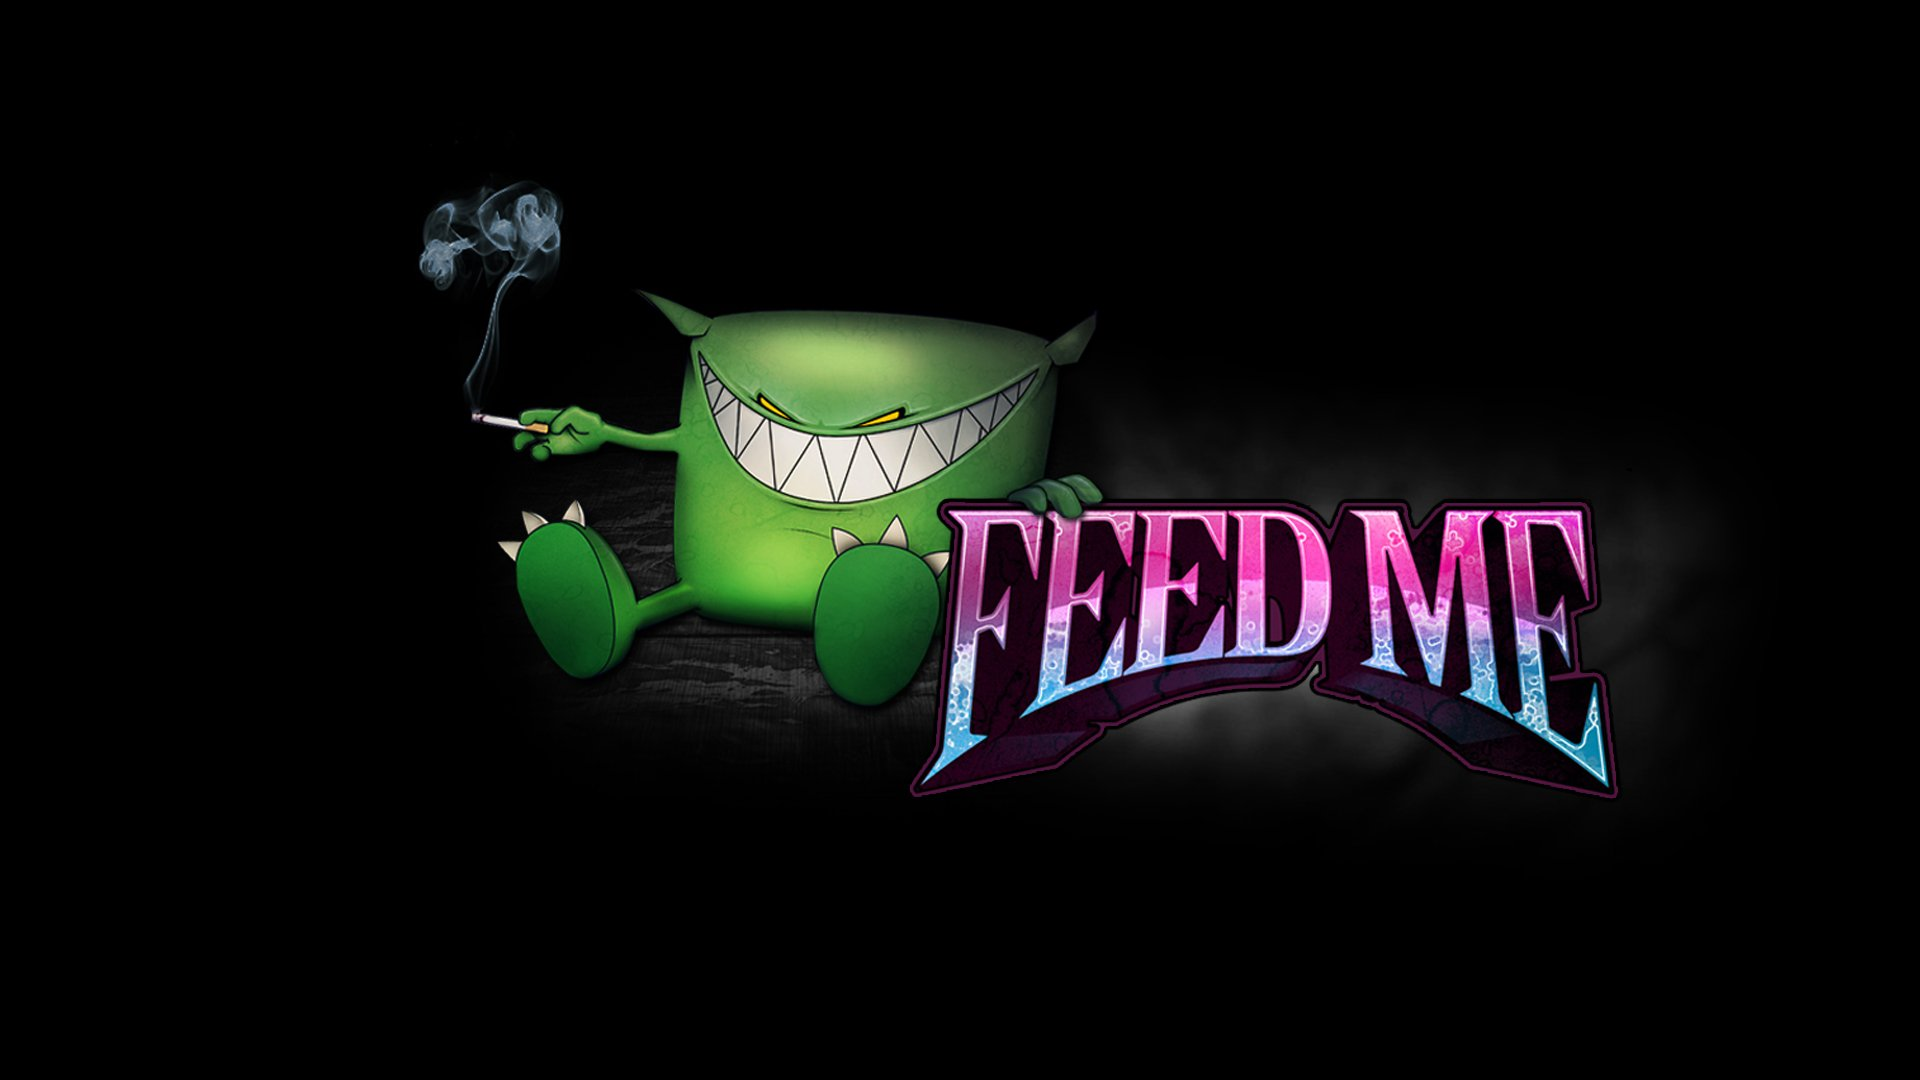 1920x1080 - Feed Me Wallpapers 26